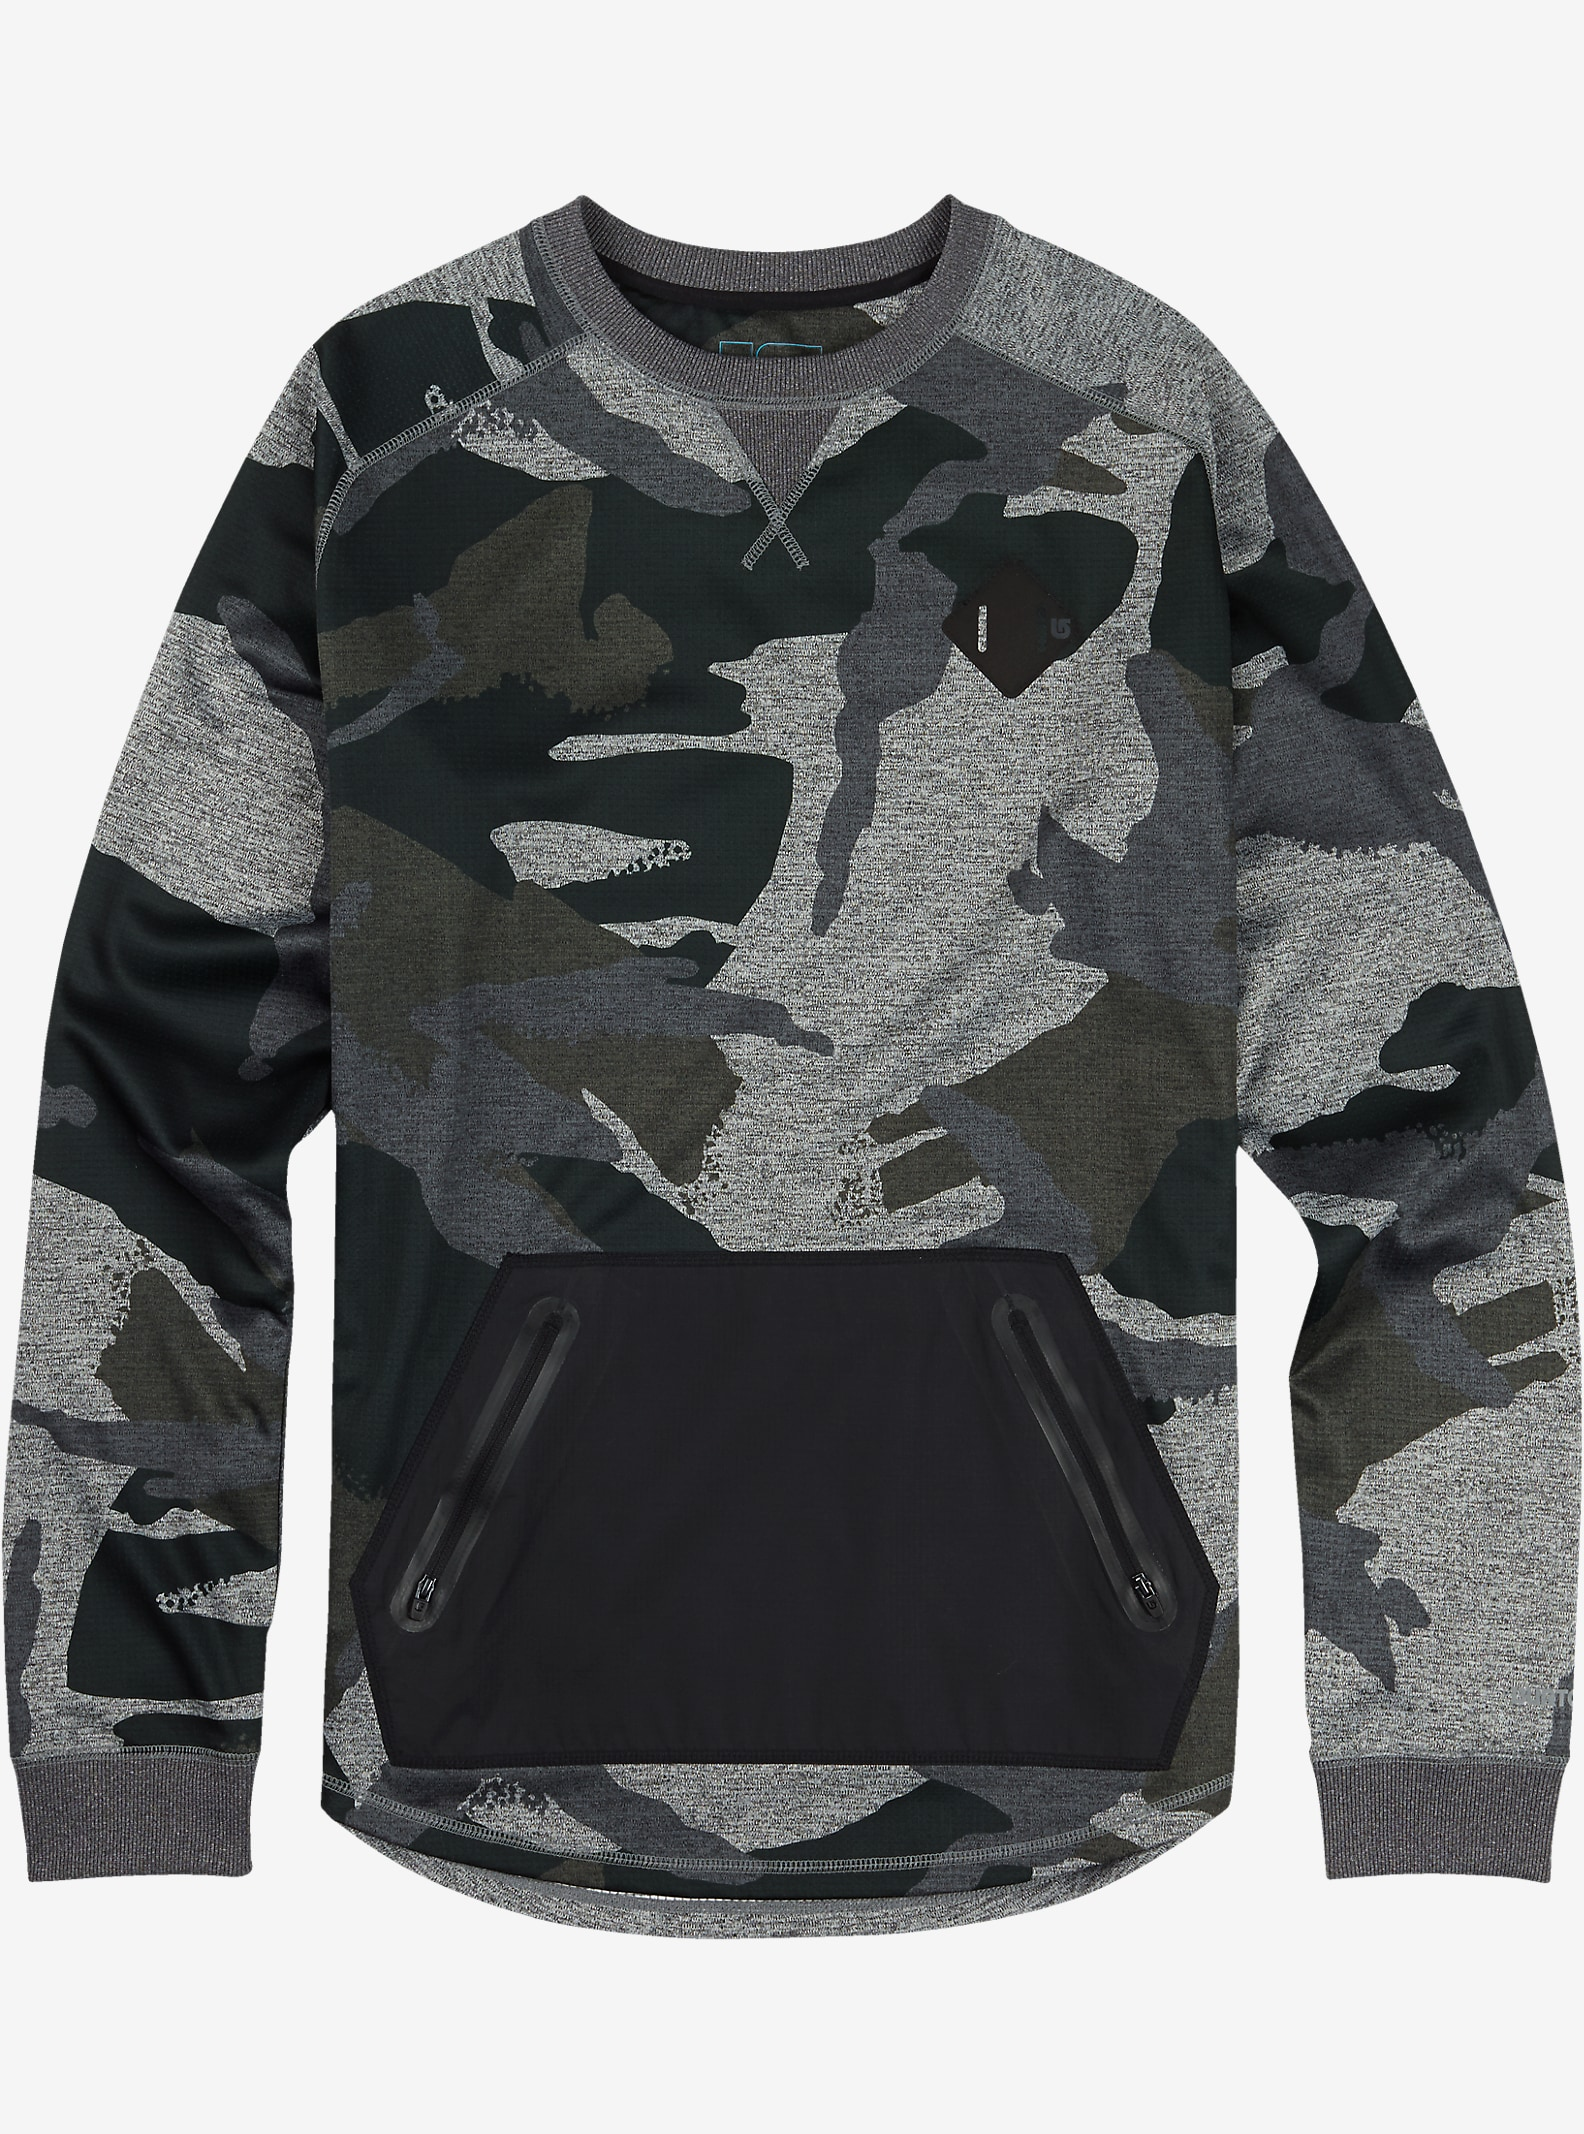 Burton Caption Crew shown in Beetle Derby Camo Heather [bluesign® Approved Fabric]